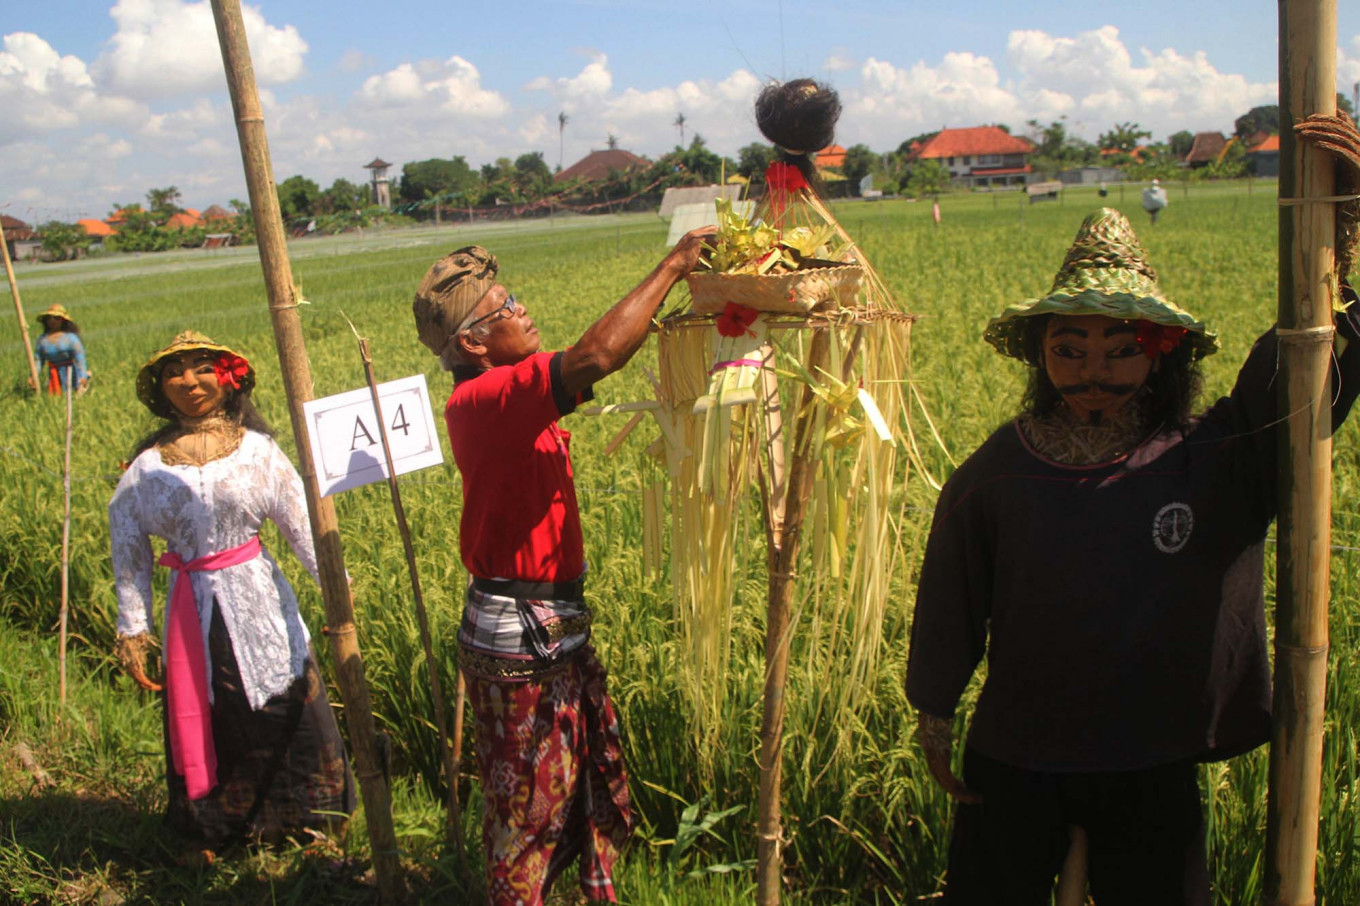 A farmer puts the offerings in between two scarecrows after the festival. JP/Zul Trio Anggono